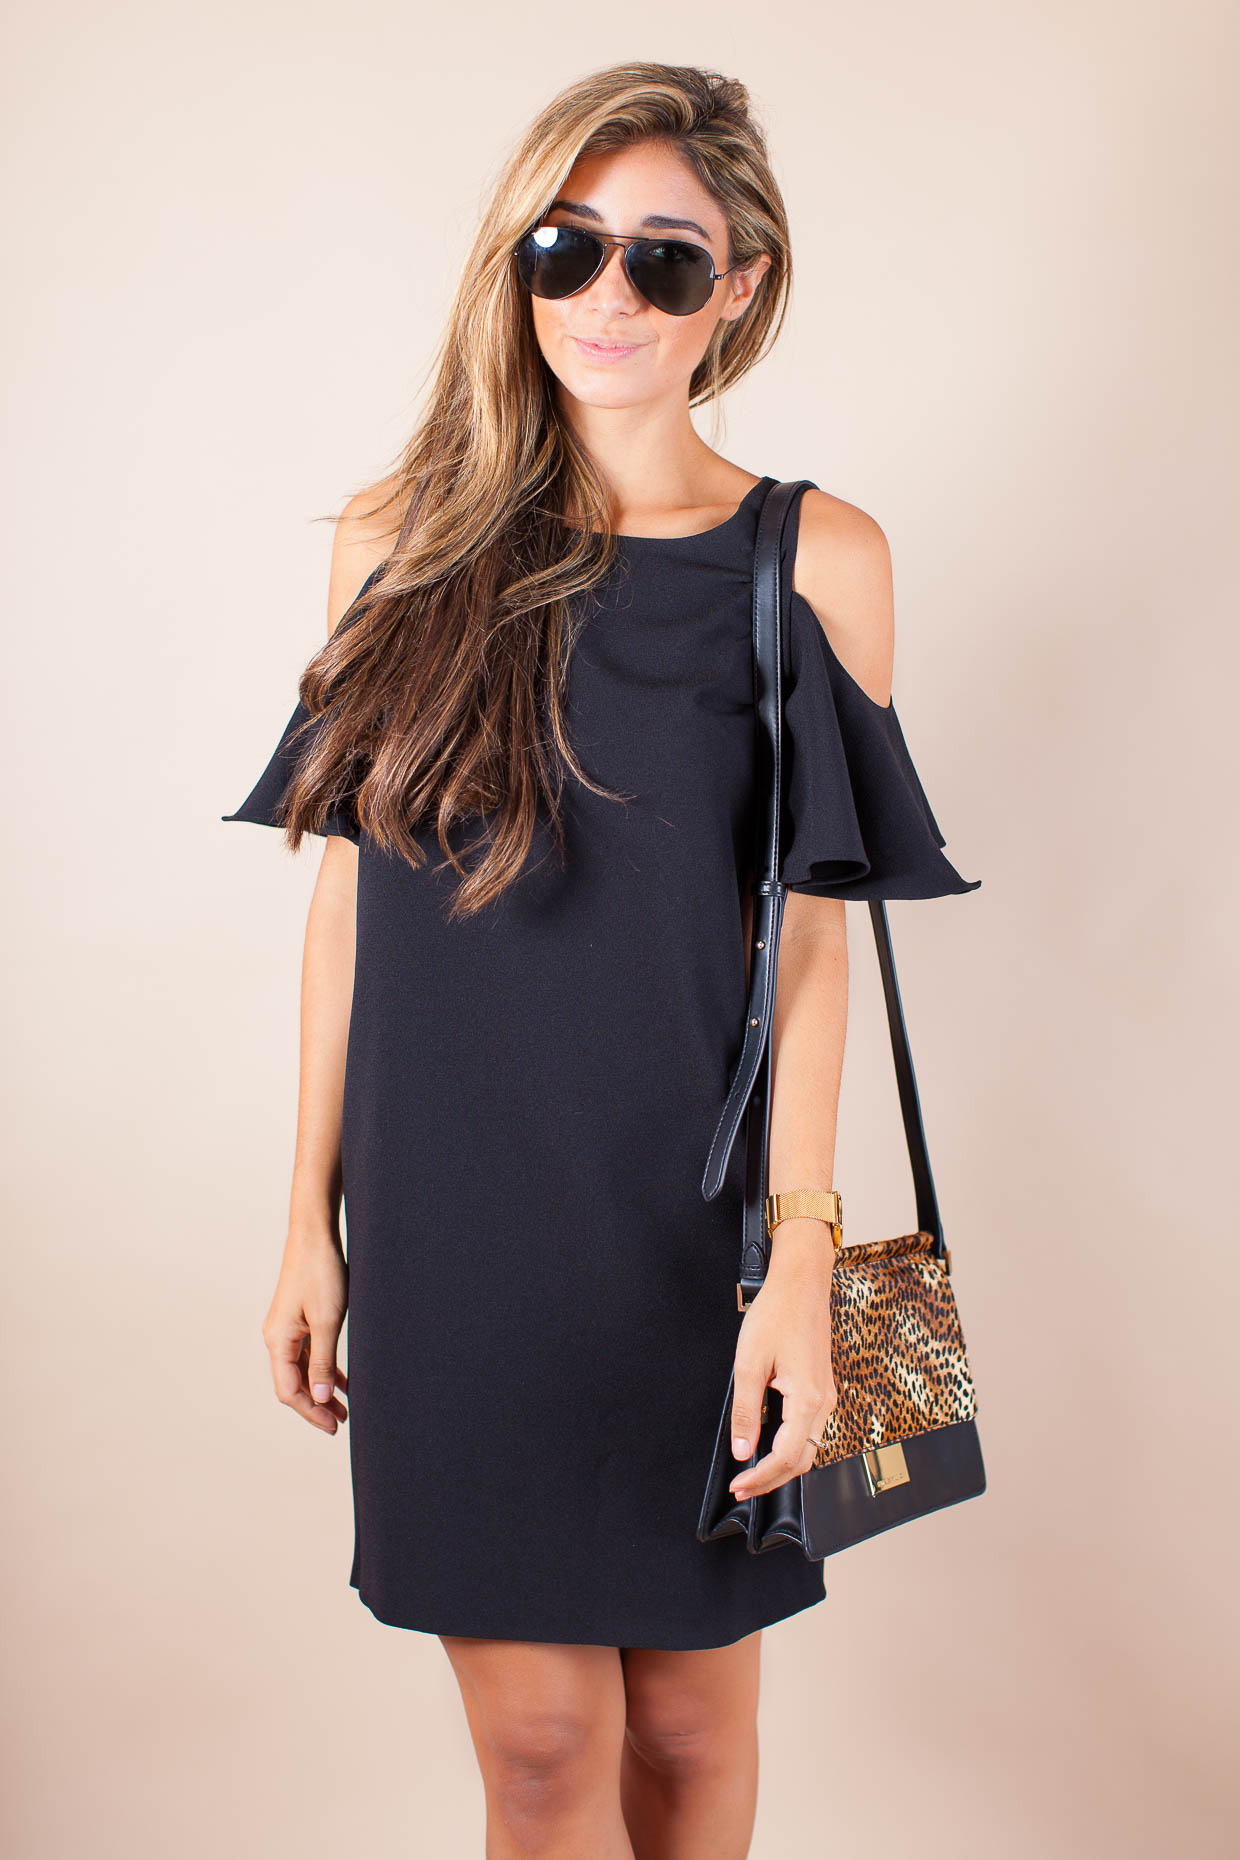 The Darling Detail is wearing a Chelsea28 'Peek-A-Boo' Cold Shoulder Shift Dress, Ray-Ban 'Original Aviator' Sunglasses, a LARSSON & JENNINGS 'Lugano' Mesh Strap Watch, and holding a Vince Camuto 'Abril' Leather Shoulder Bag.